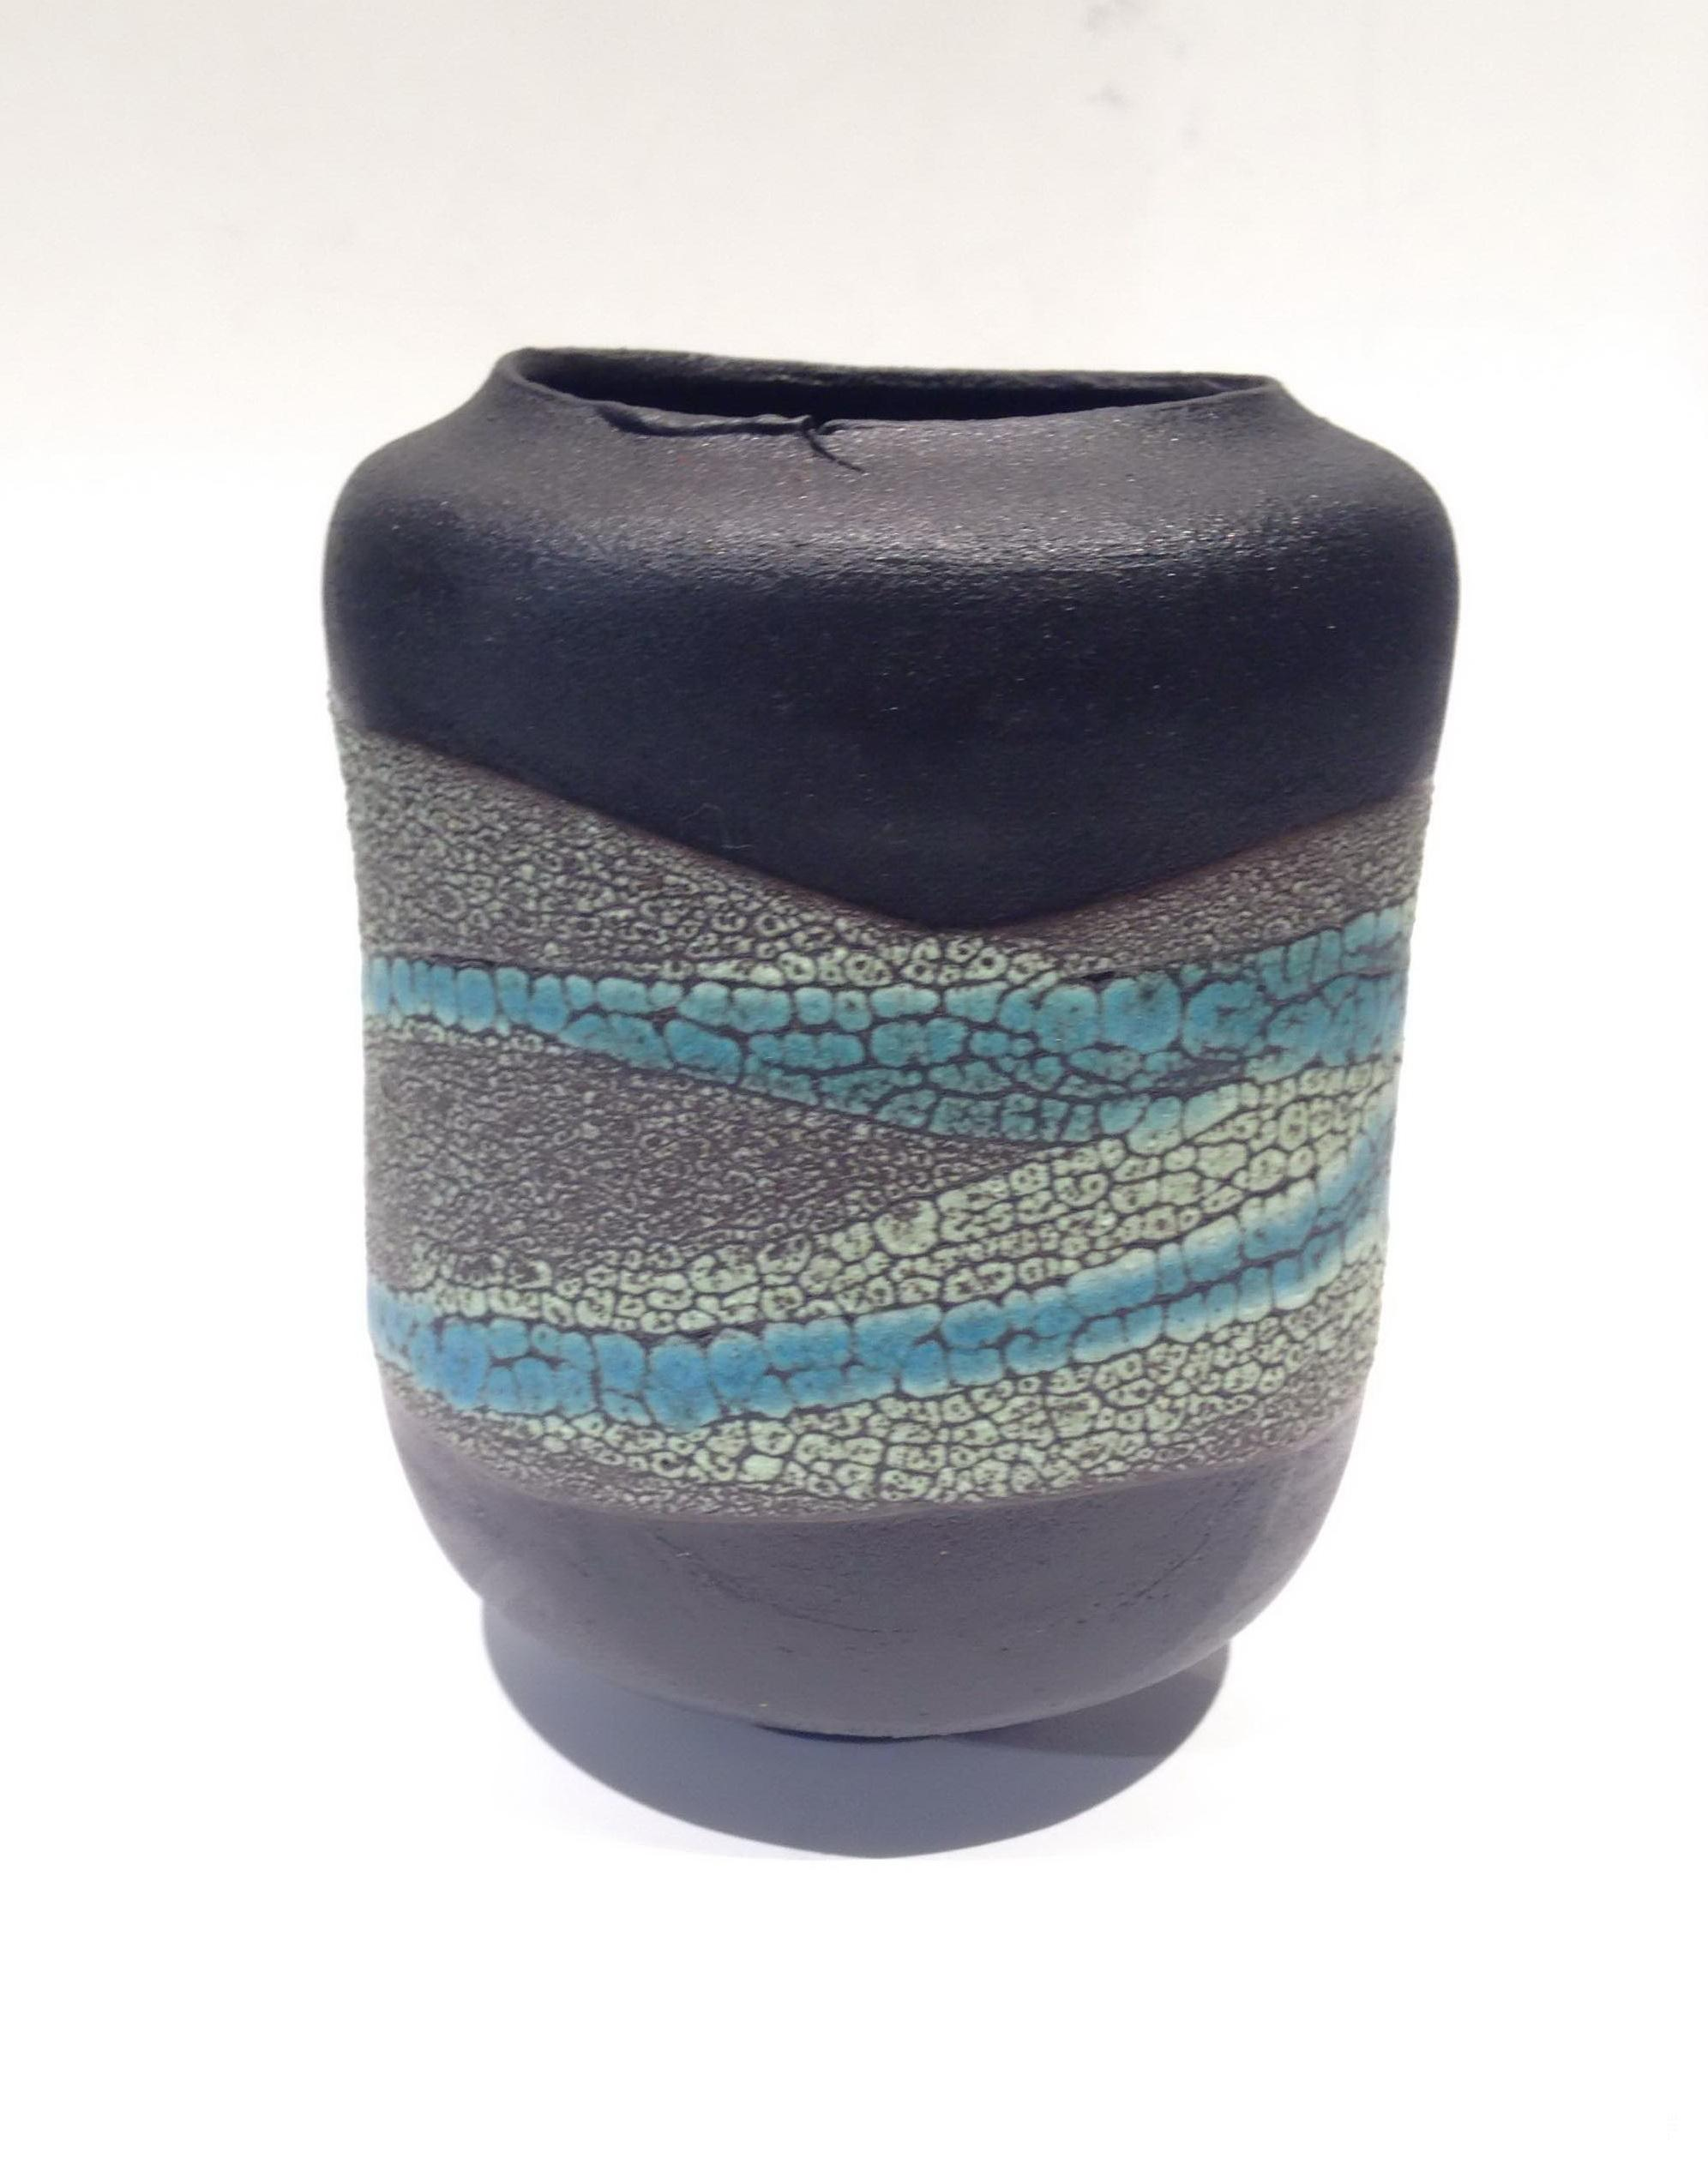 Organically-inspired Medium Turquoise Rock Vase by Sandra Dolph at The Avenue Gallery, a contemporary fine art gallery in Victoria, BC, Canada.